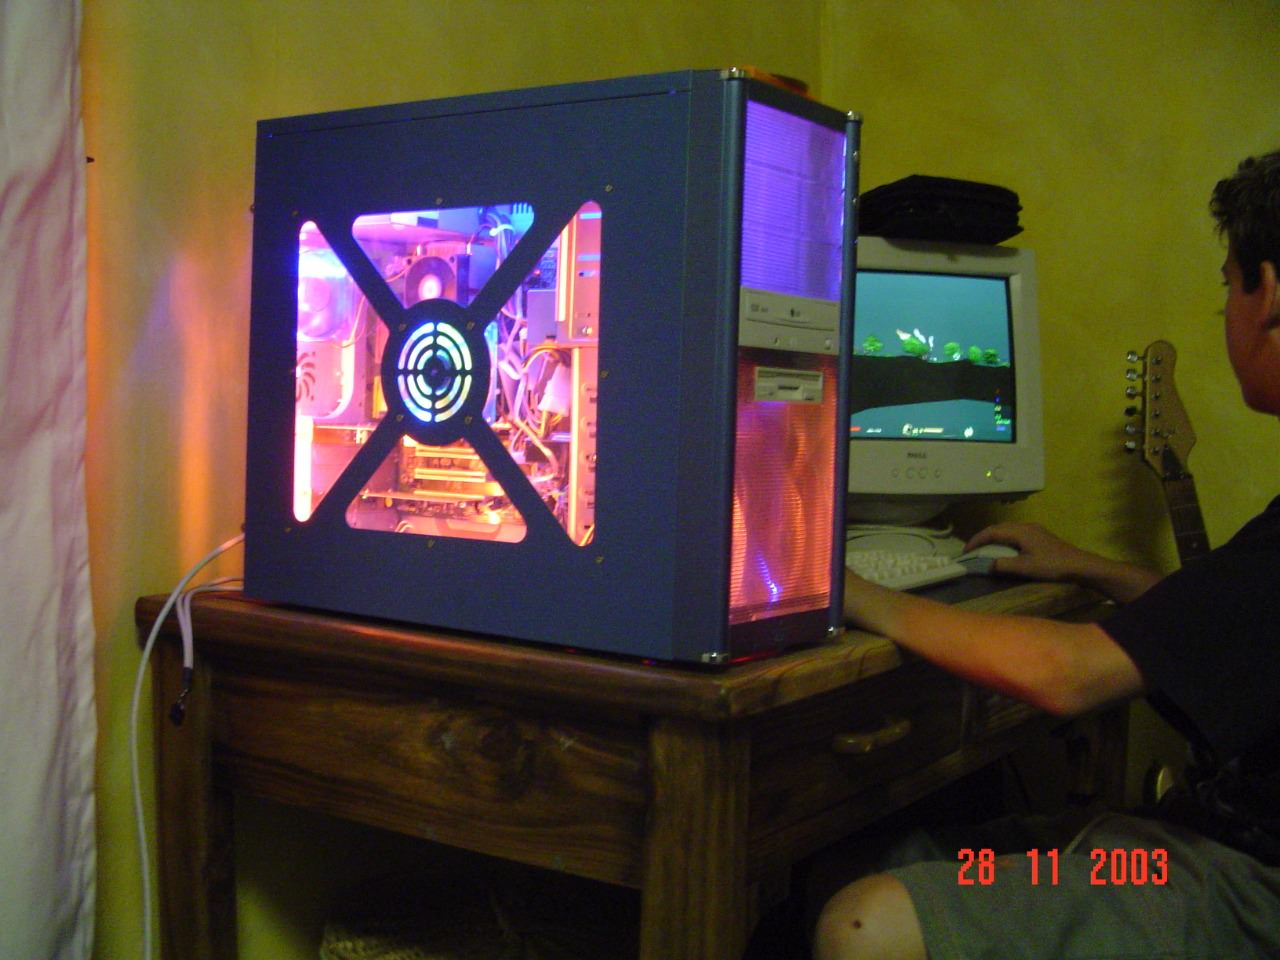 Share your PC Builds - Hardware & Gadgets - Most Epic Win